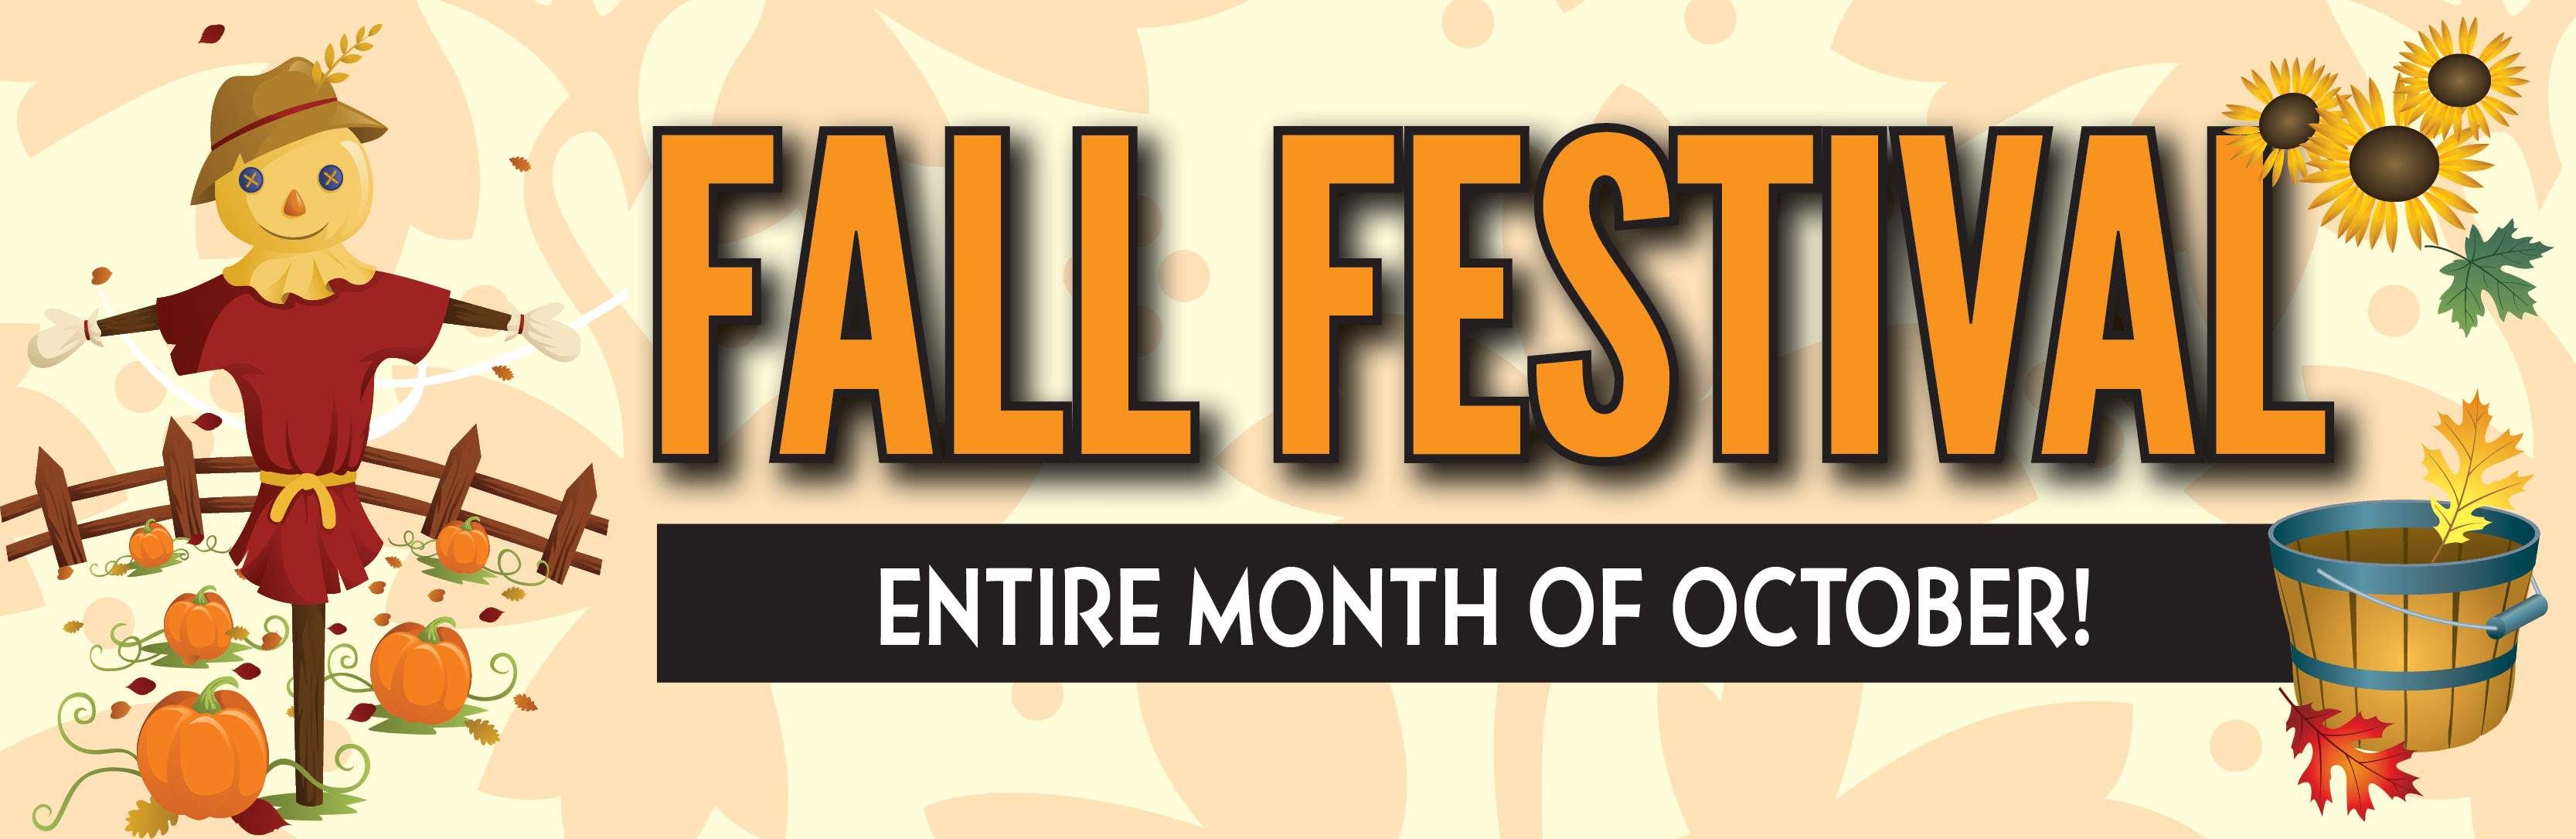 Fall Festival | Whole Month of October!